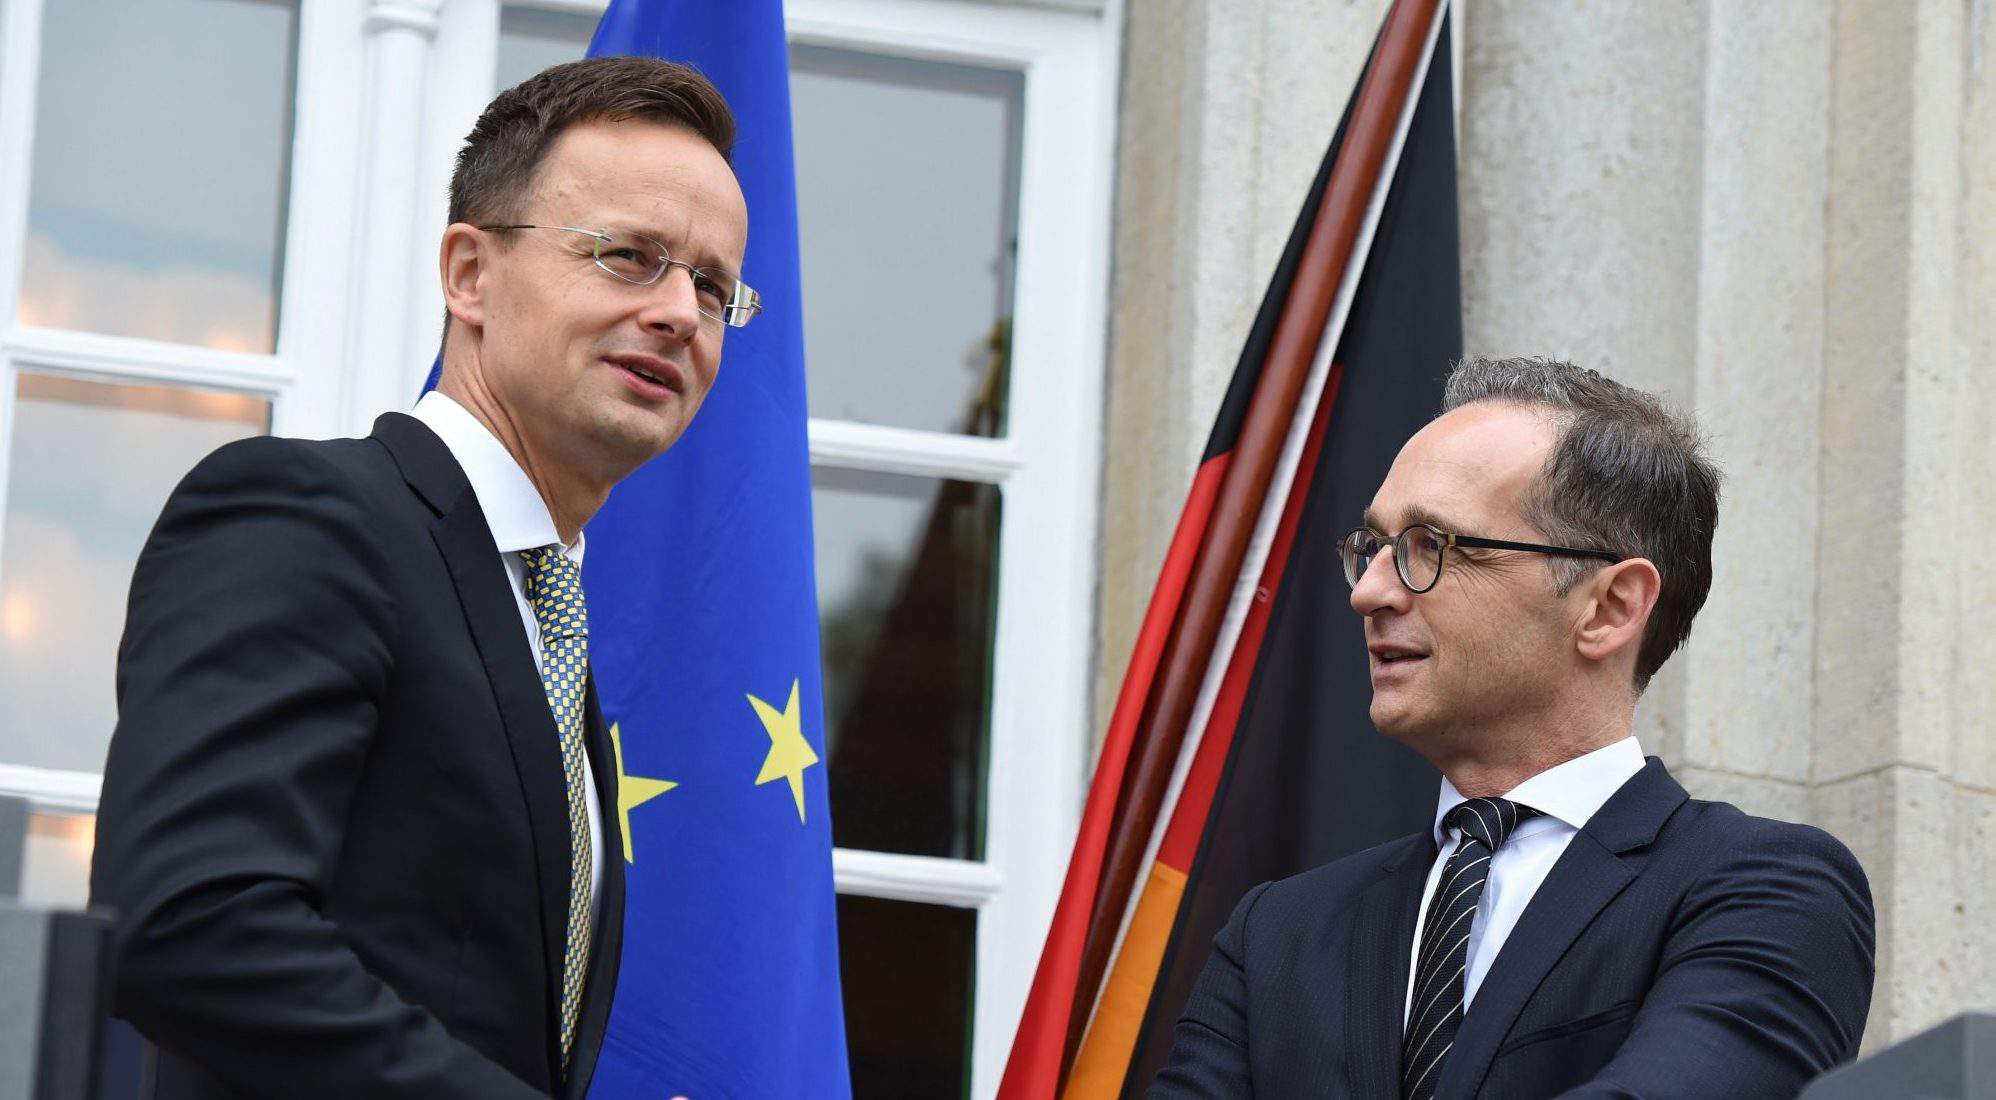 Germany Hungary foreign ministers